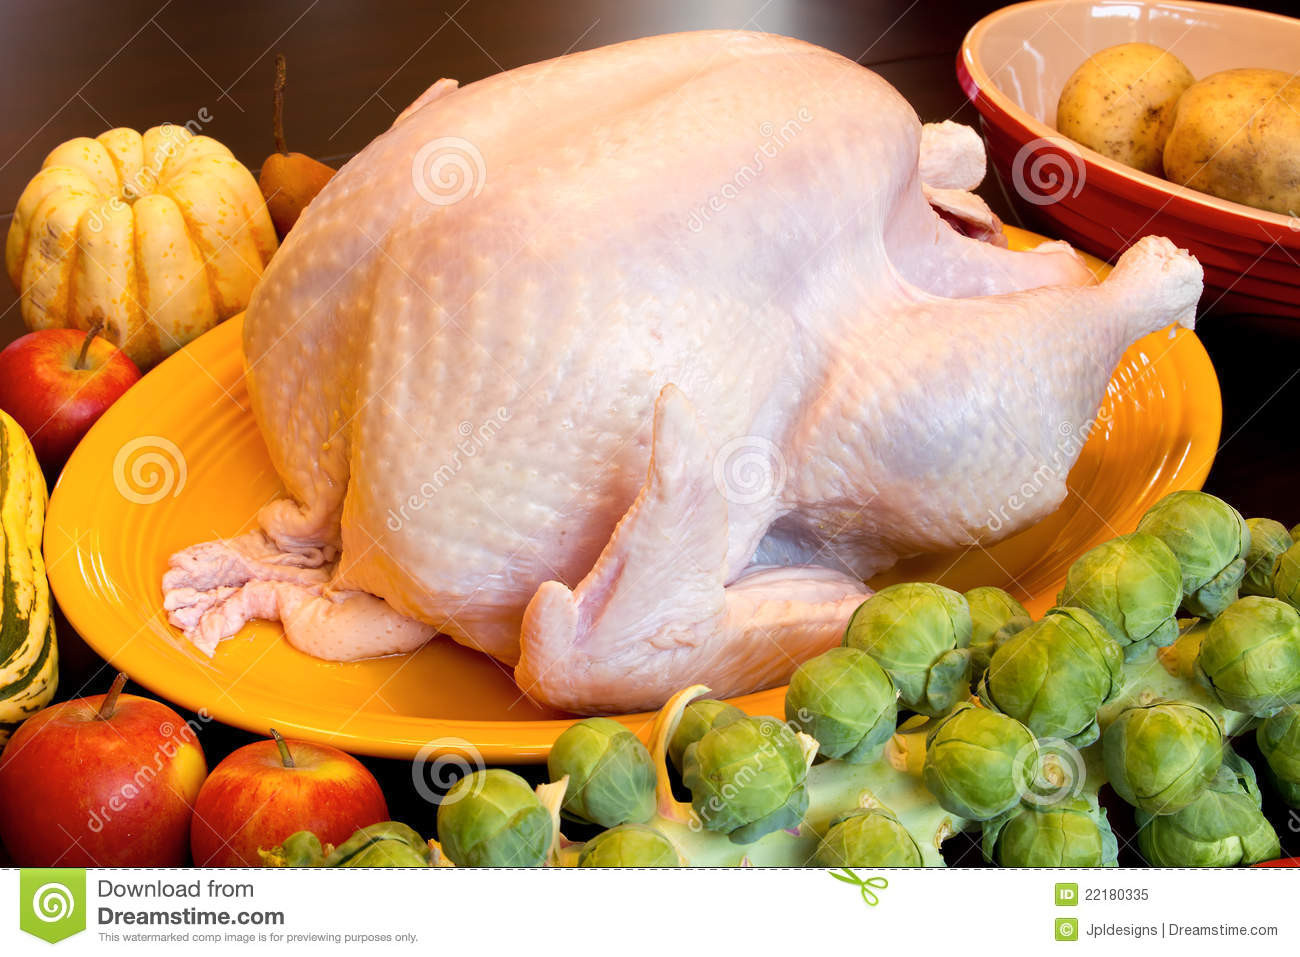 Ingredients For Thanksgiving Turkey  Thanksgiving Turkey Dinner Cooking Ingre nts Royalty